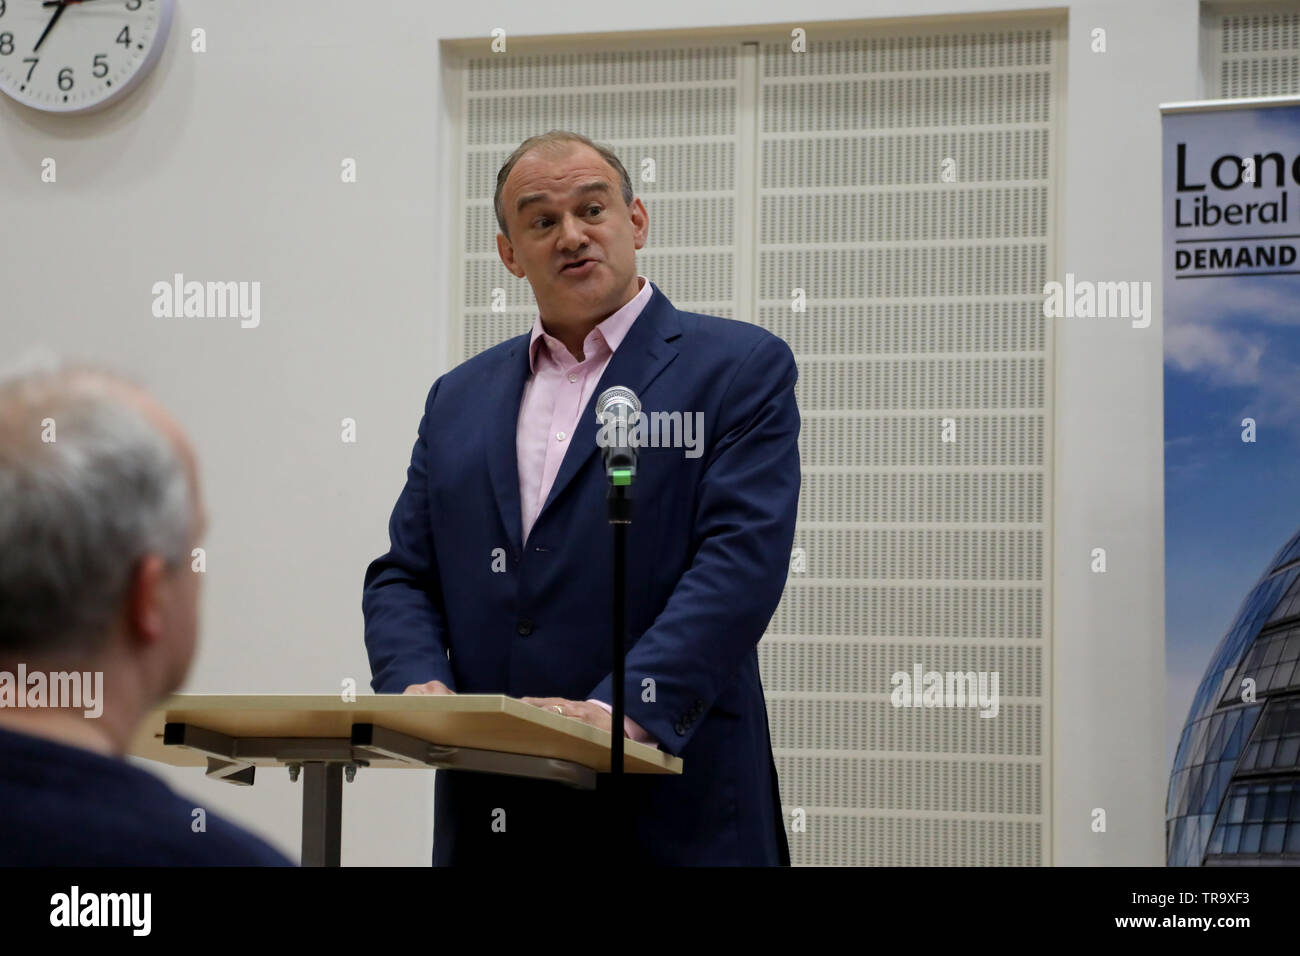 London / UK – May 31, 2019: Ed...